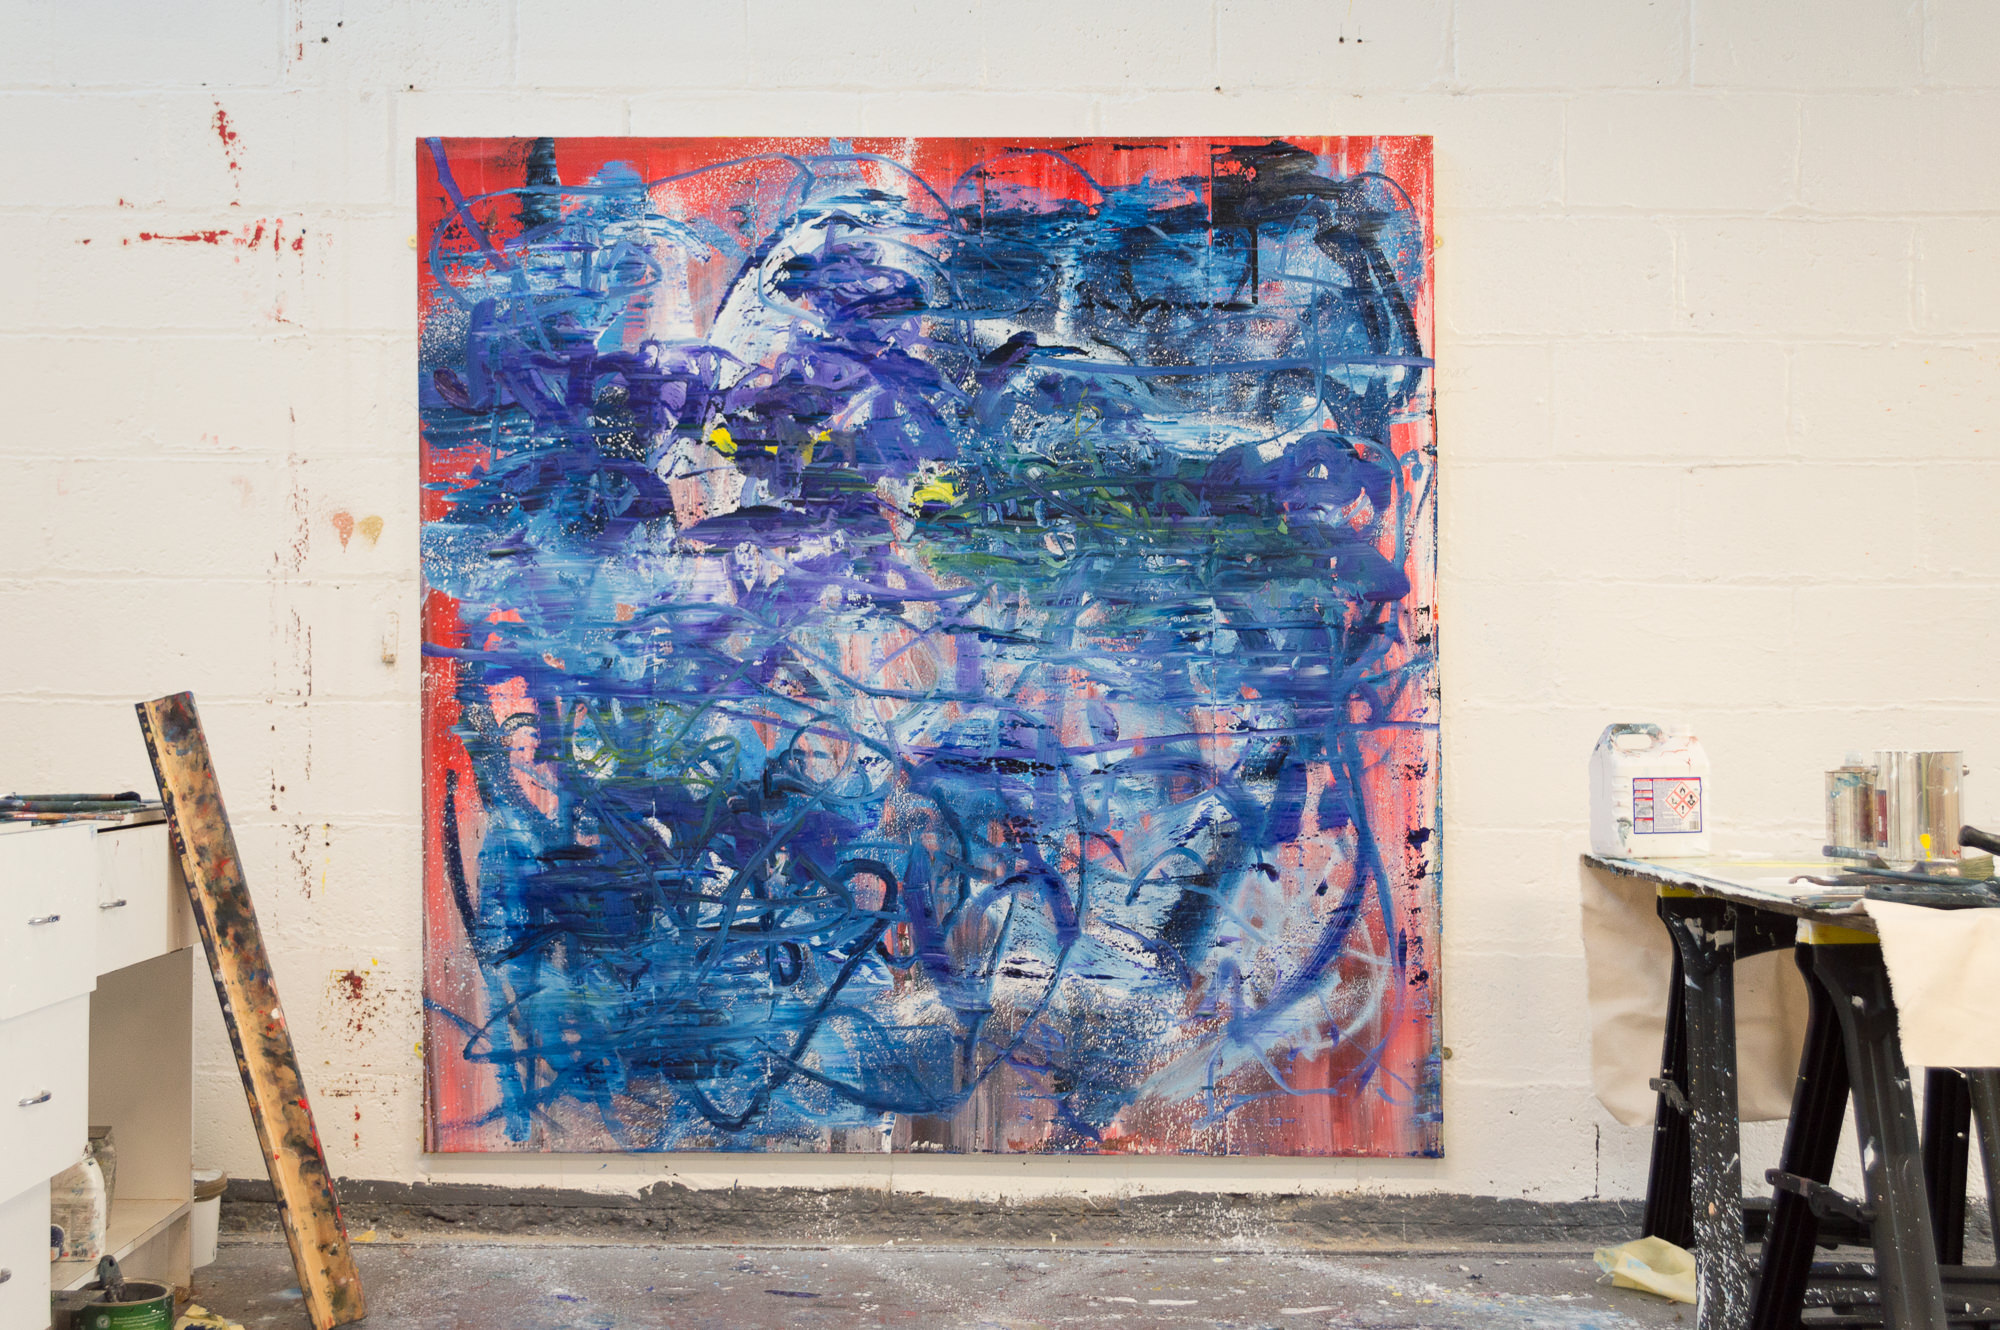 Robert West. Borderline Series. Abstract Painting No.75. Oil on Canvas. 200 x 200 cm. 2013-2014. 09.jpg